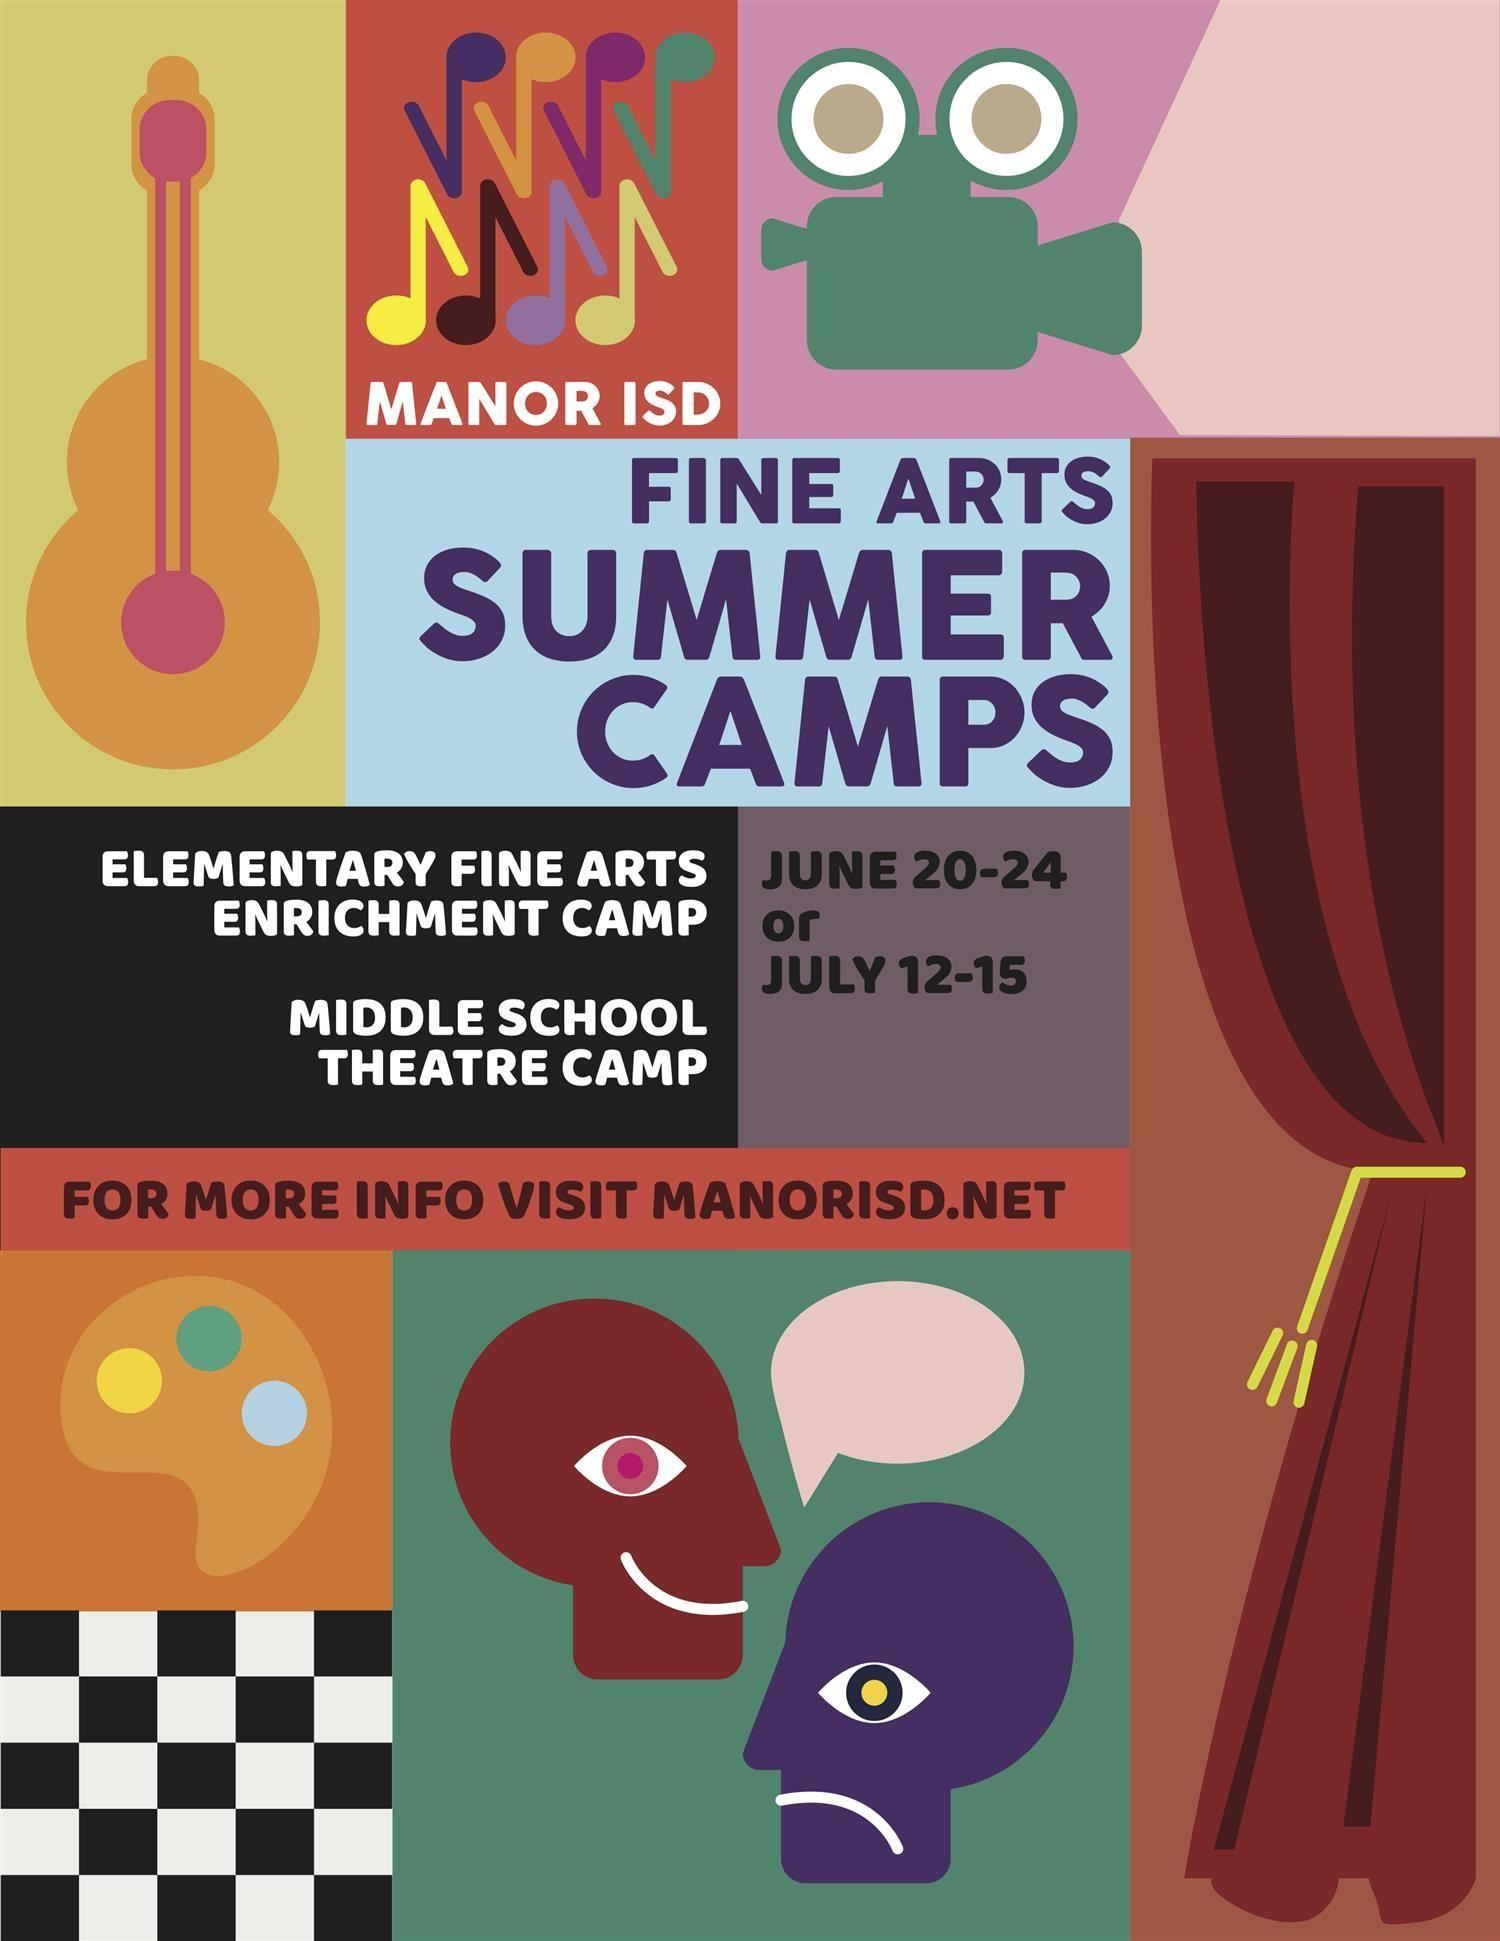 misd fine arts summer camps